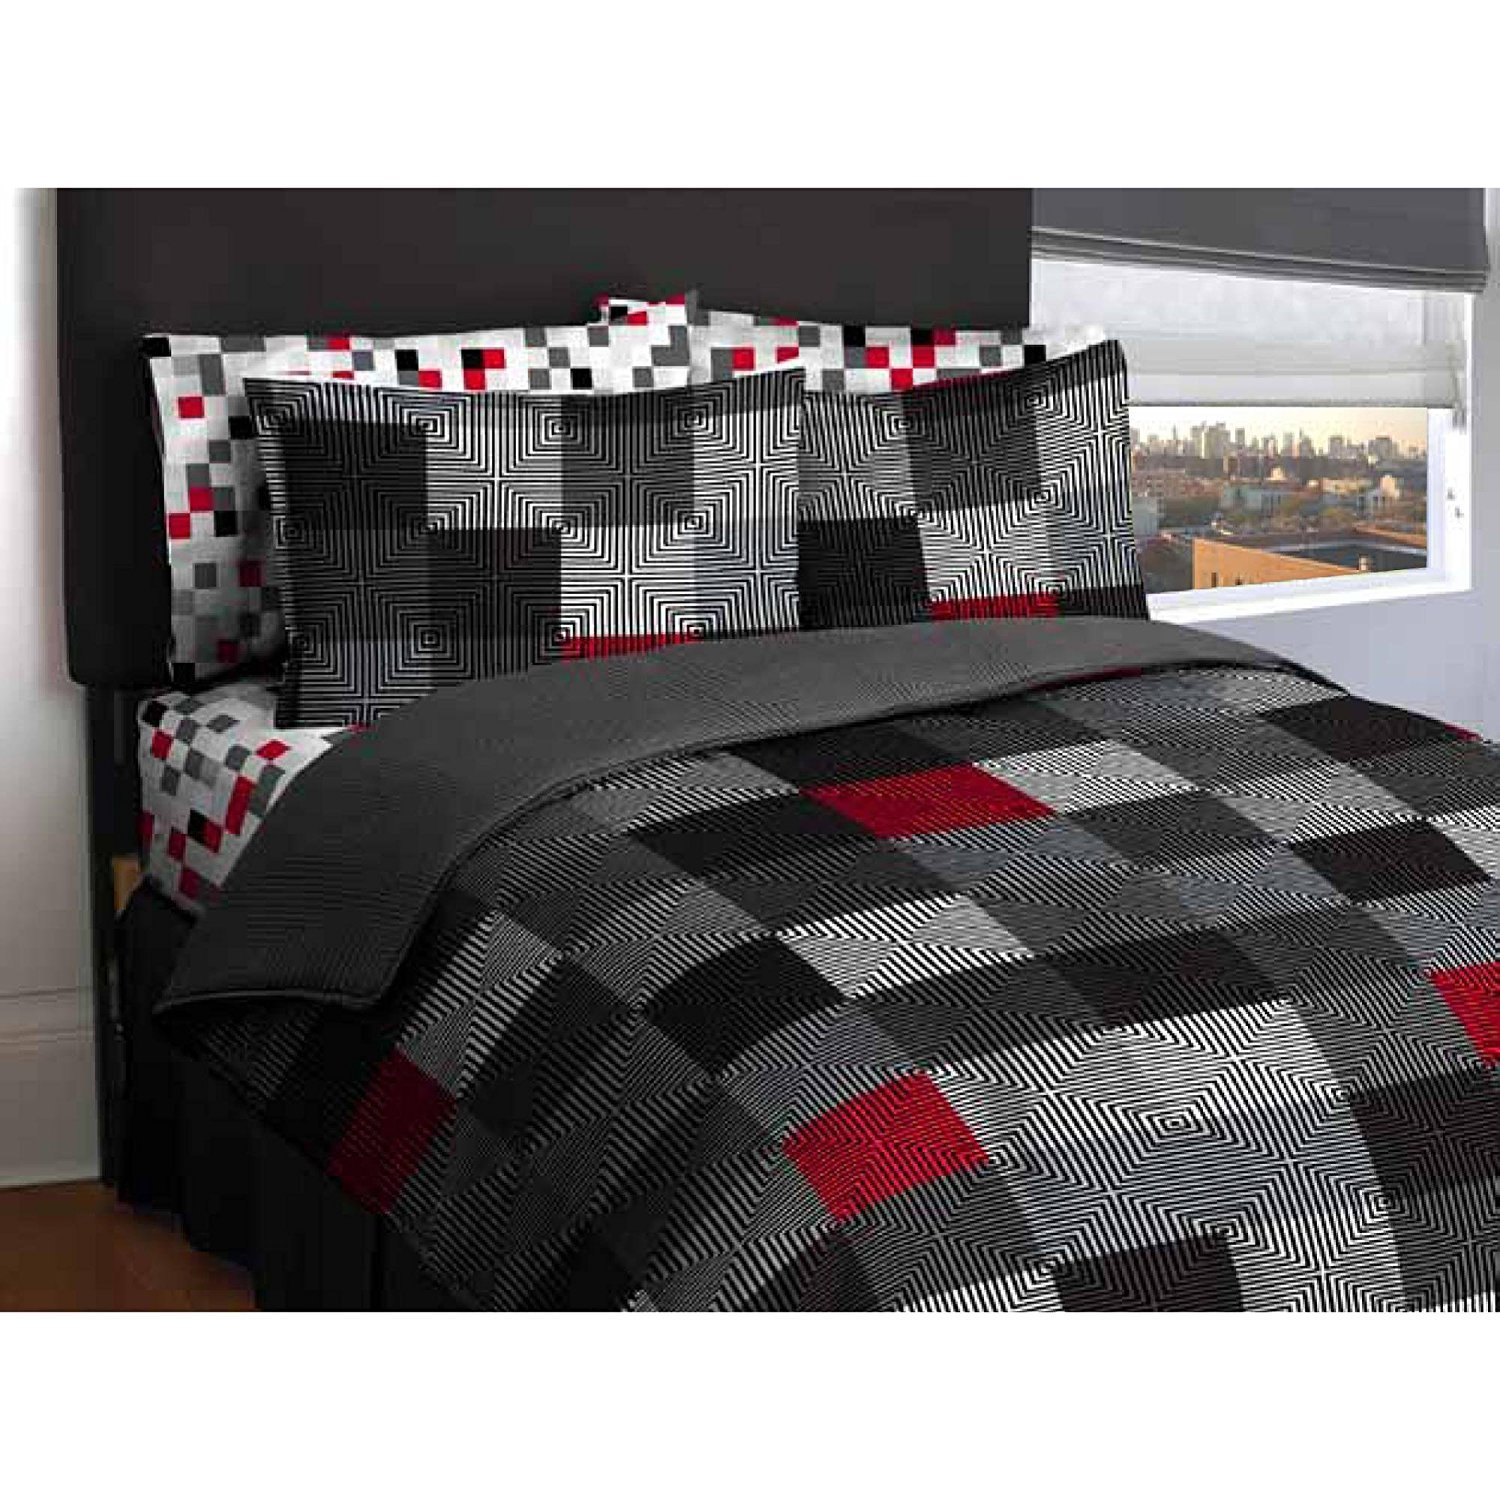 Ln Twin size Teen Boys Red,Gray, White, Black Geo Blocks comforter with sheet set, Bed in a Bag Bedding Set (Full)